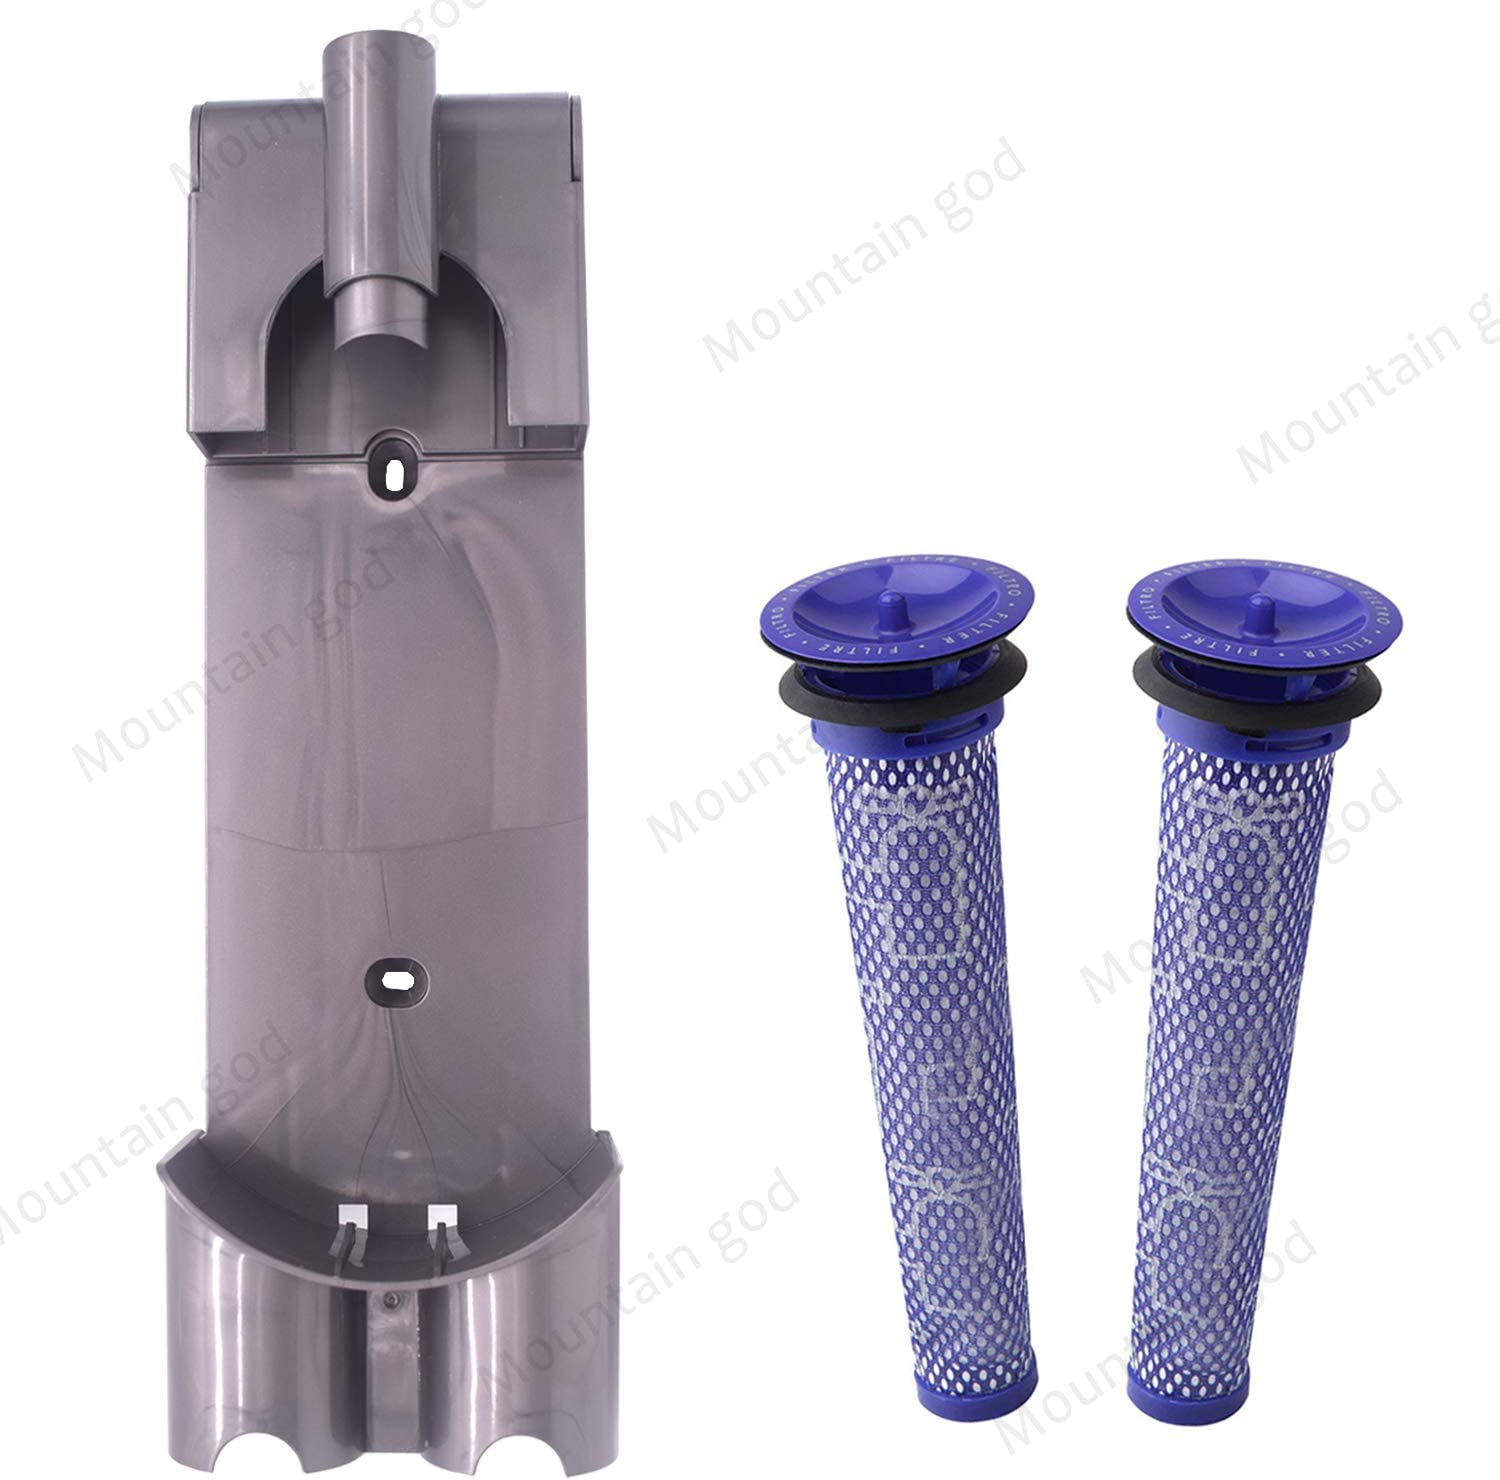 Replacement Docking Station Part Kit - 1 Wall Mount Bracket 2 Pre Filters Parts Compatible with Dyson V7 V8 Series Handheld - Replenishment Vacuum Cleaner Docking Station Filter Accessories